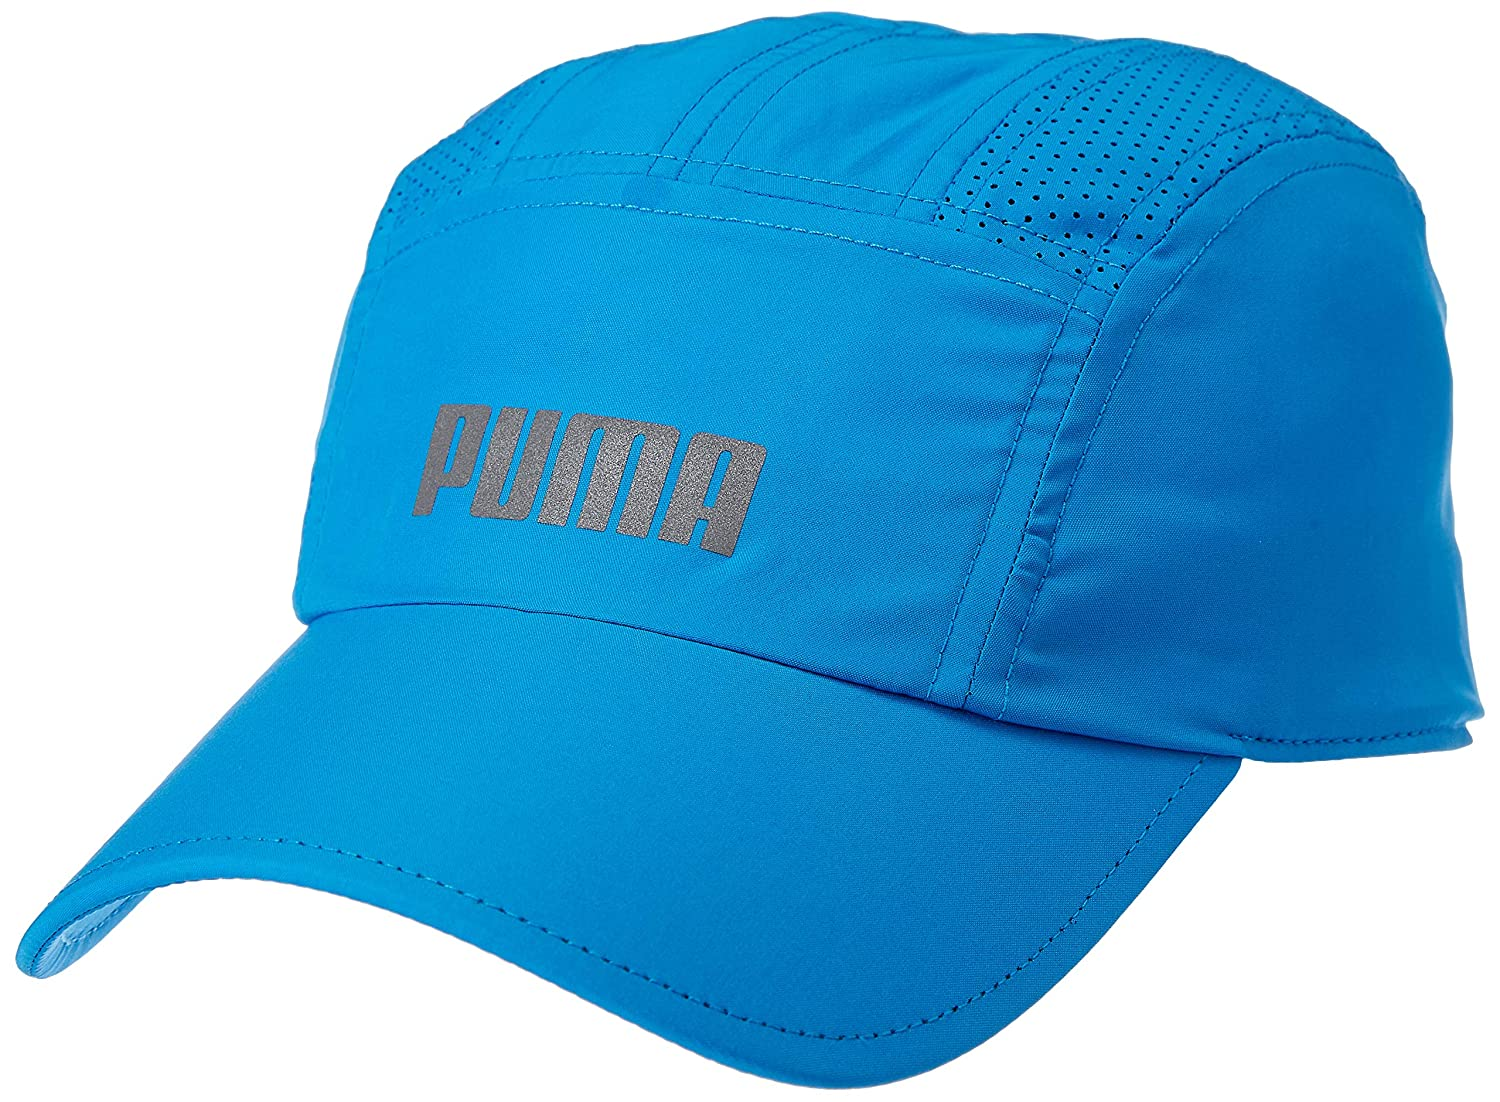 newest 1abdd da0e2 Puma Unisex Sky Blue Performance Running Cap  Amazon.in  Clothing    Accessories